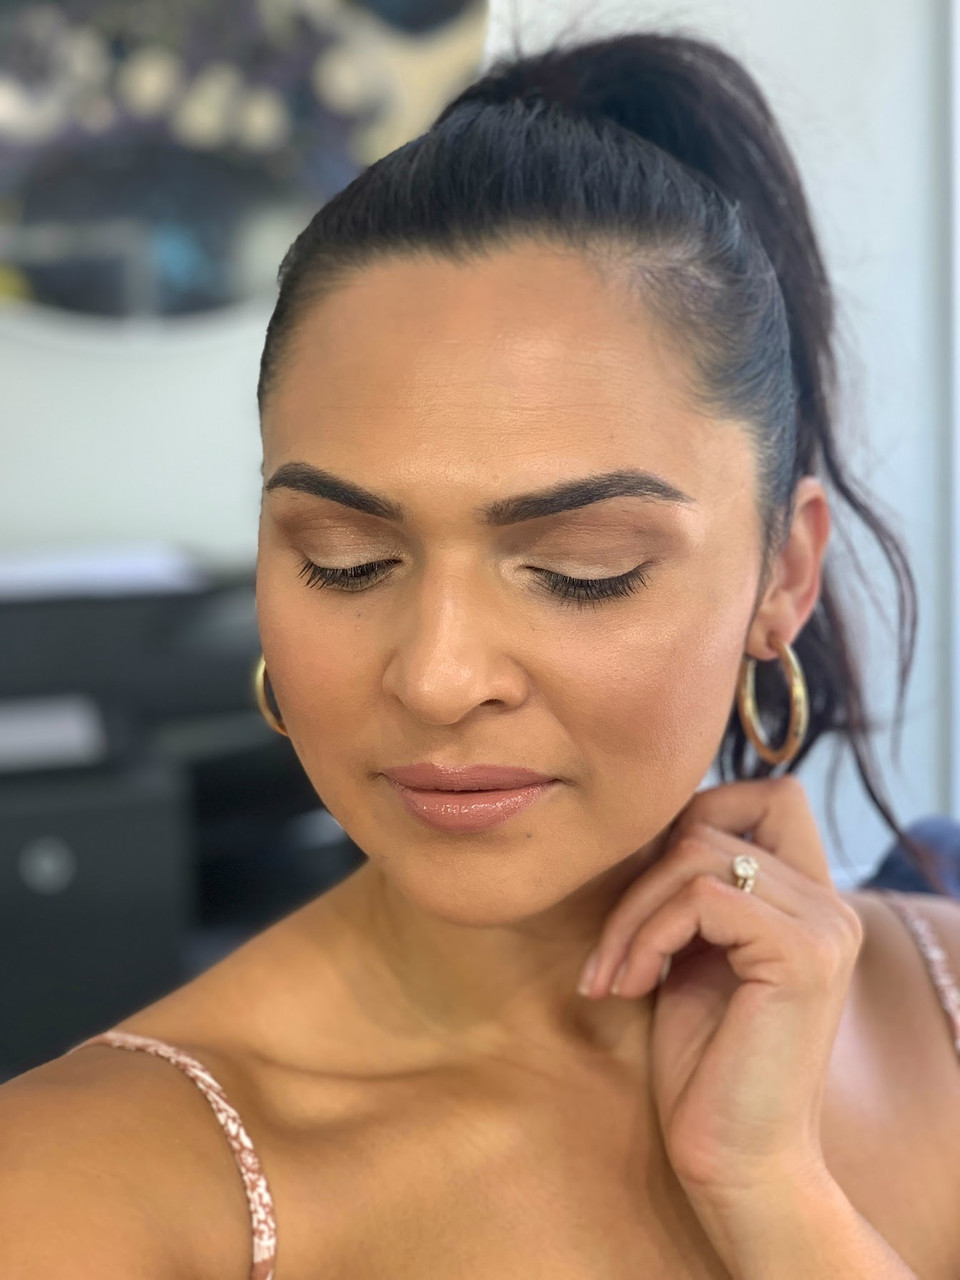 FRIDAY GLAM:  Simple summer look